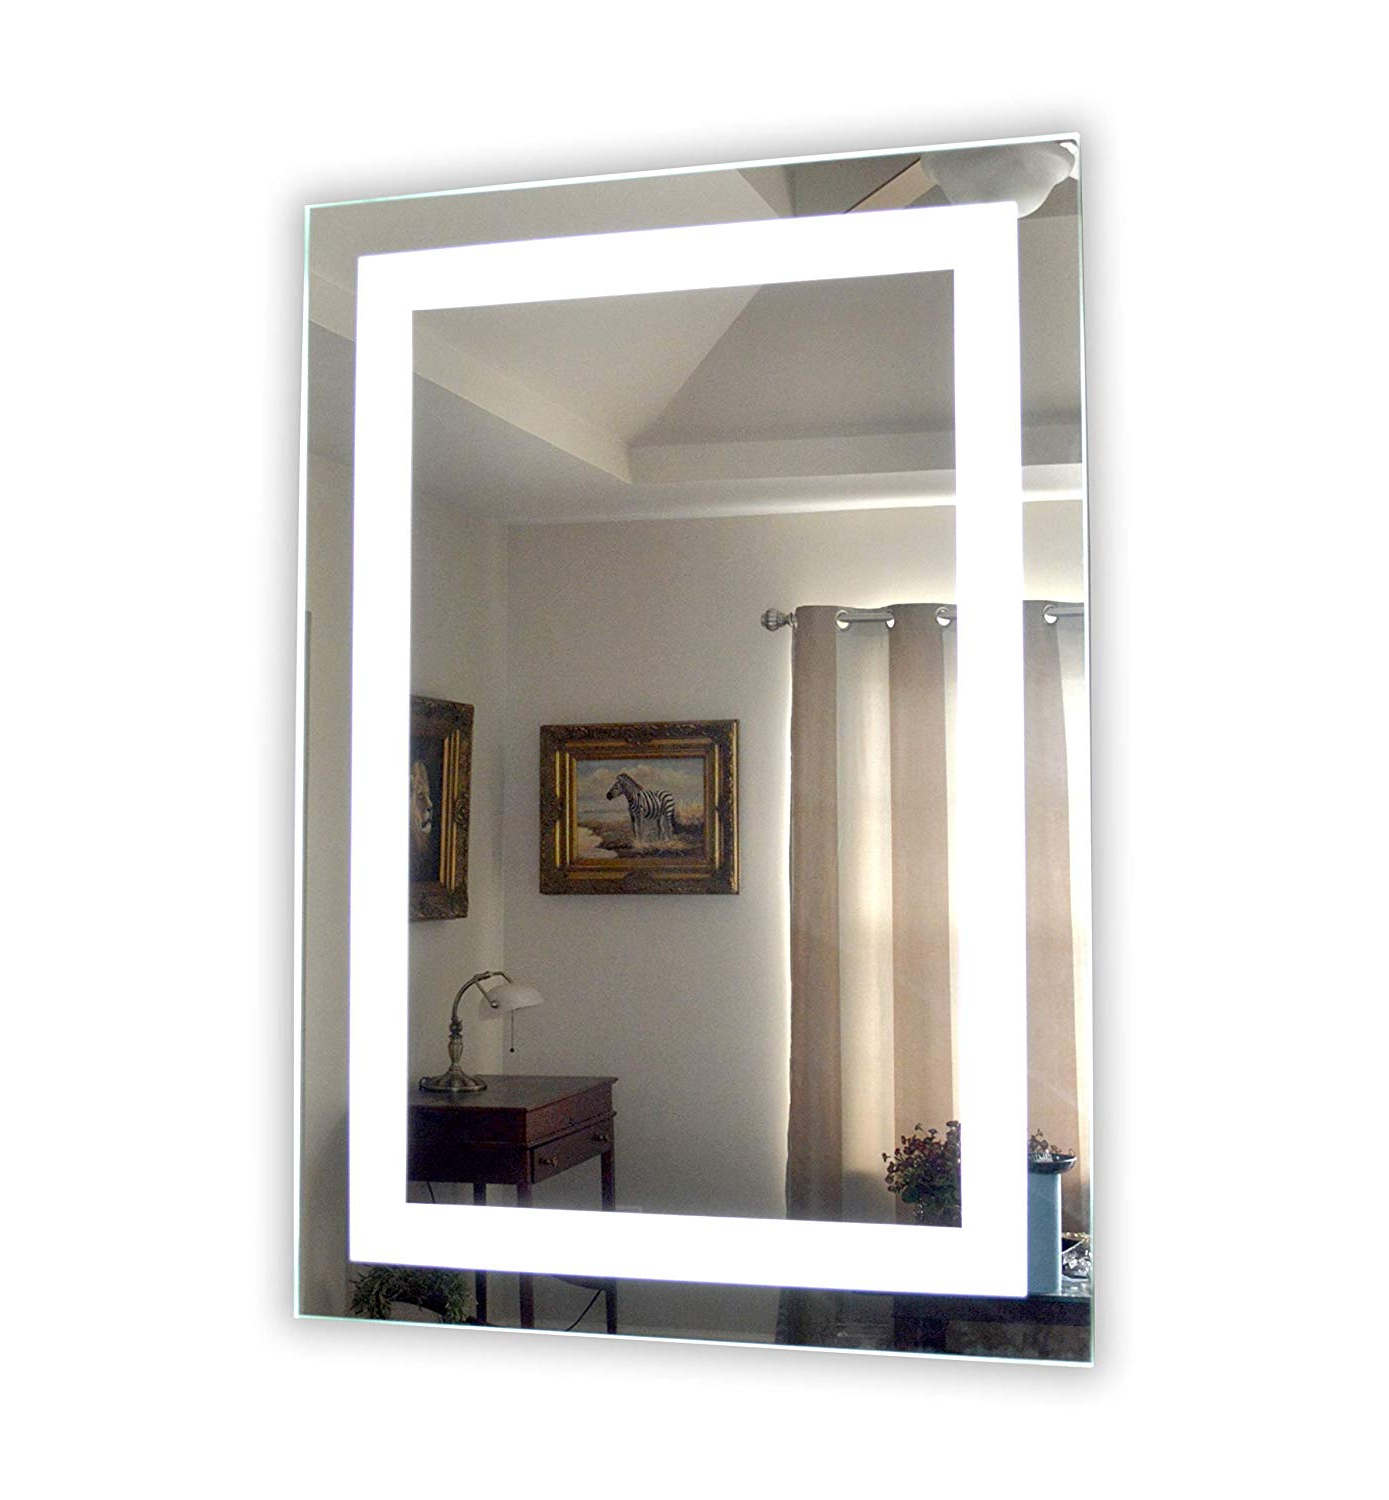 Well Liked Vanity Mirrors In Amazon: Wall Mounted Lighted Vanity Mirror Mam83248 Commercial (View 2 of 20)